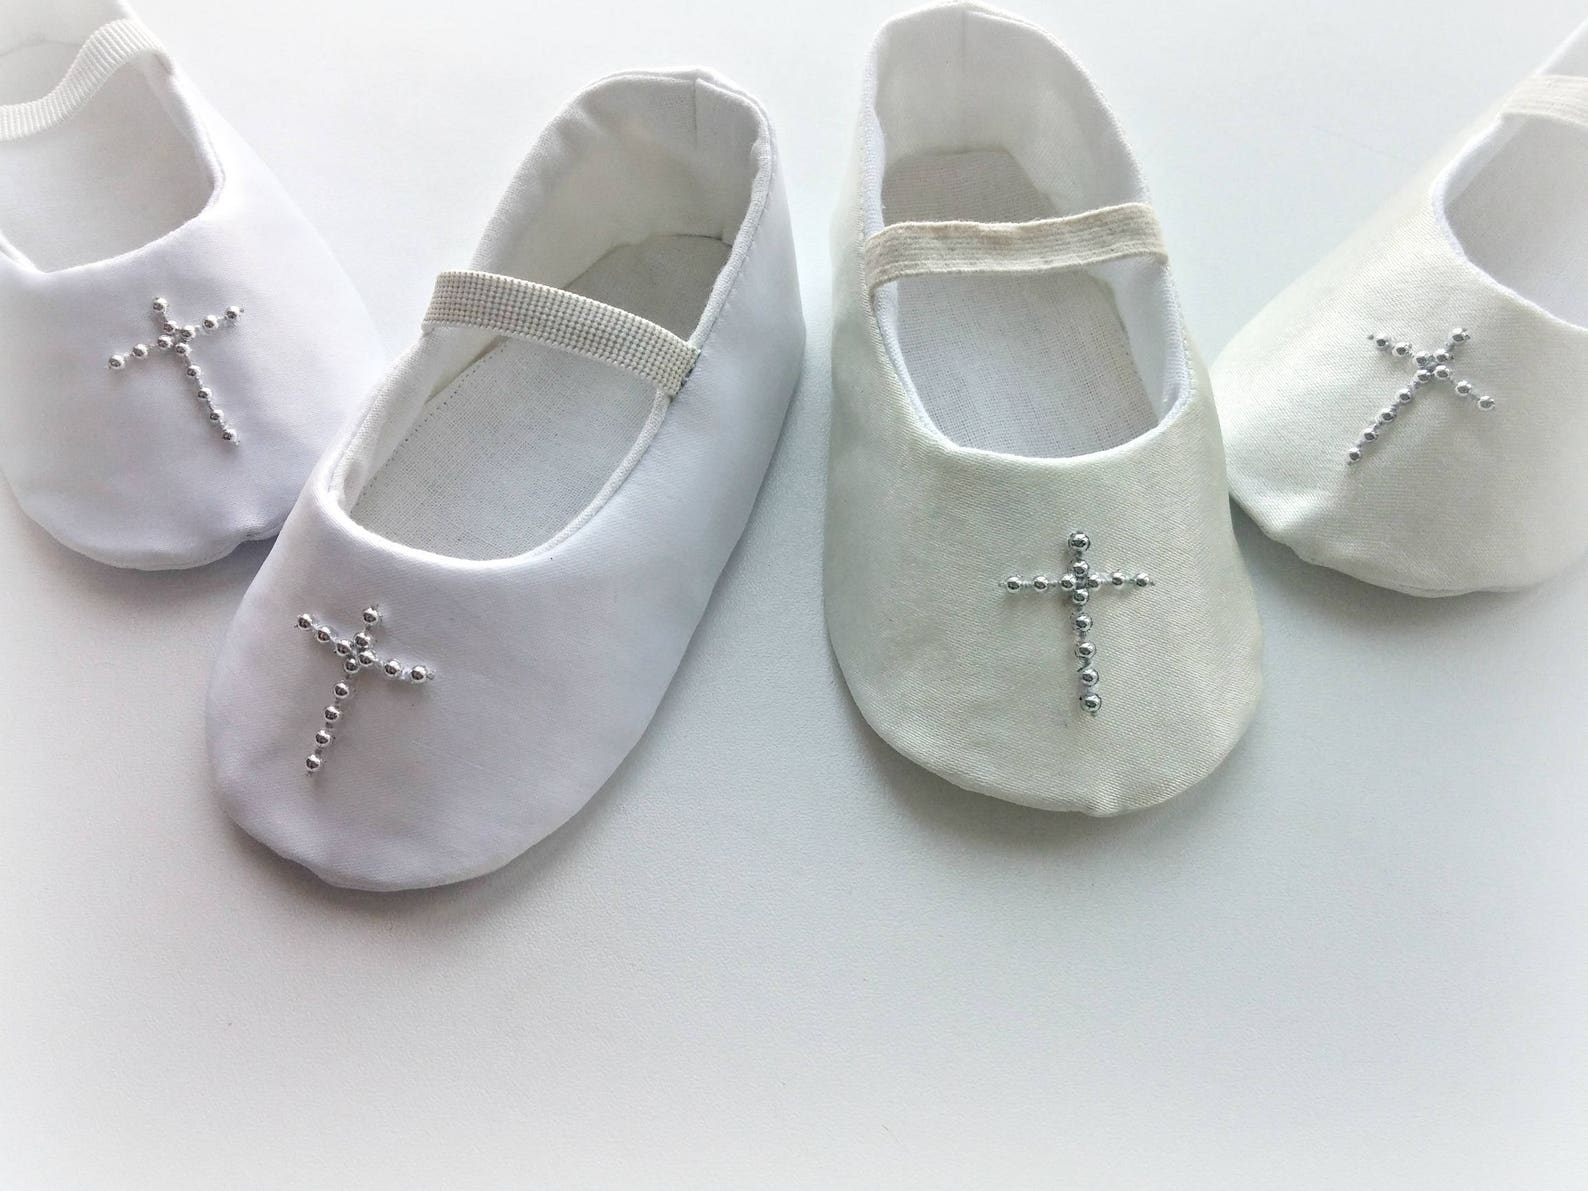 cross white or ivory christening shoes / newborn shoes baby girl slippers baptism shoes dressy ballet flats white or ivory satin